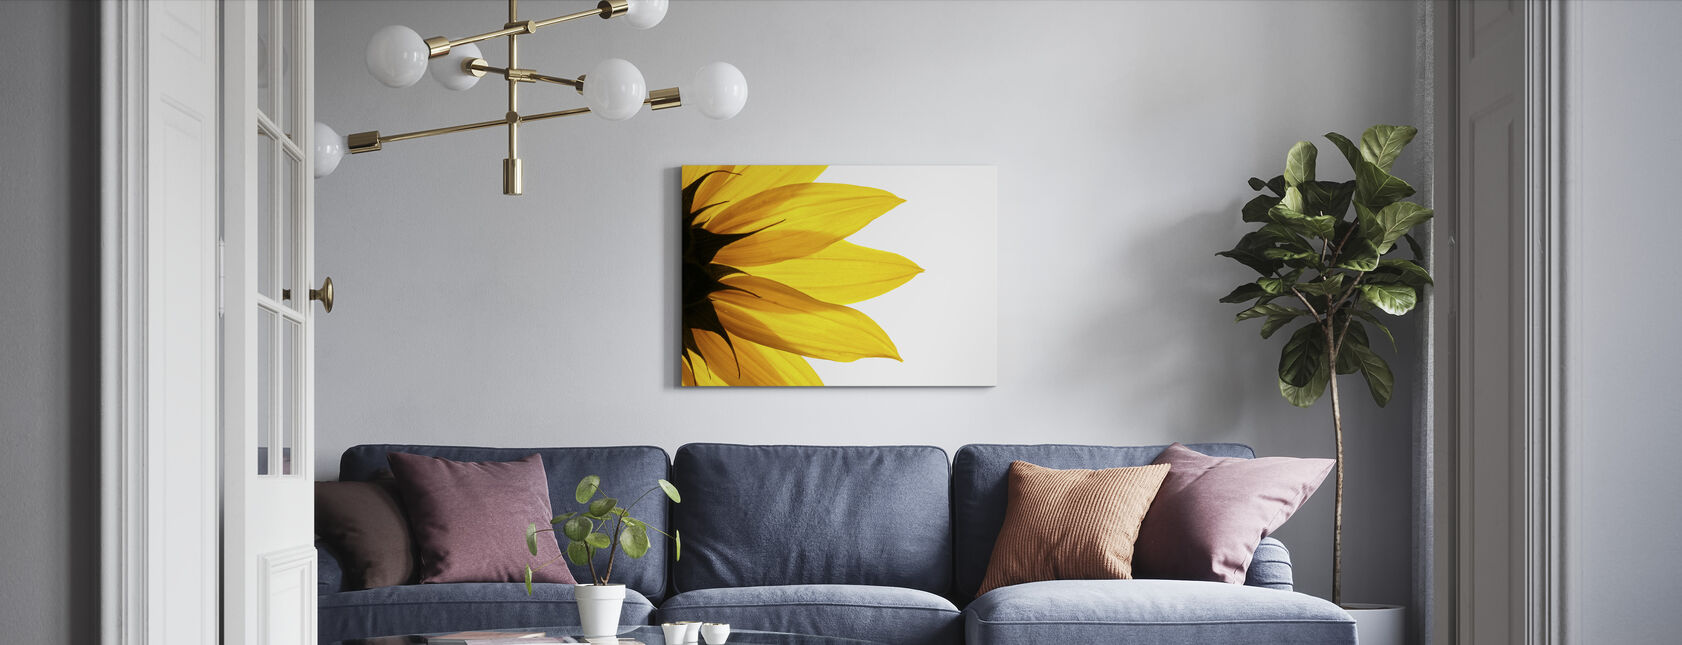 Sunflower Detail - Canvas print - Living Room